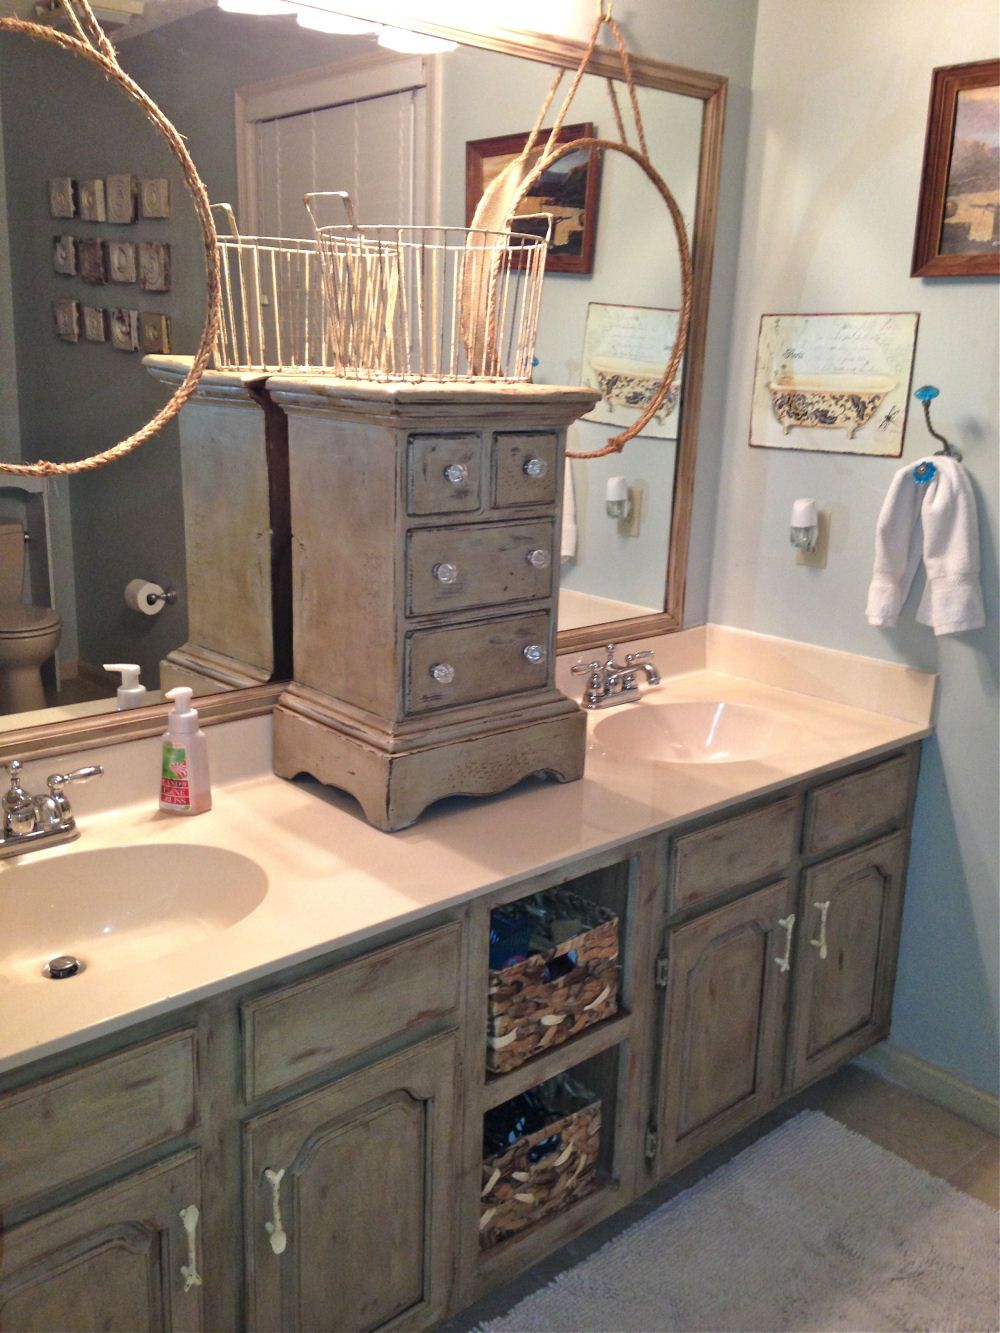 A bathroom vanity makeover project using Annie Sloan Chalk Paint and  supplies on hand. We